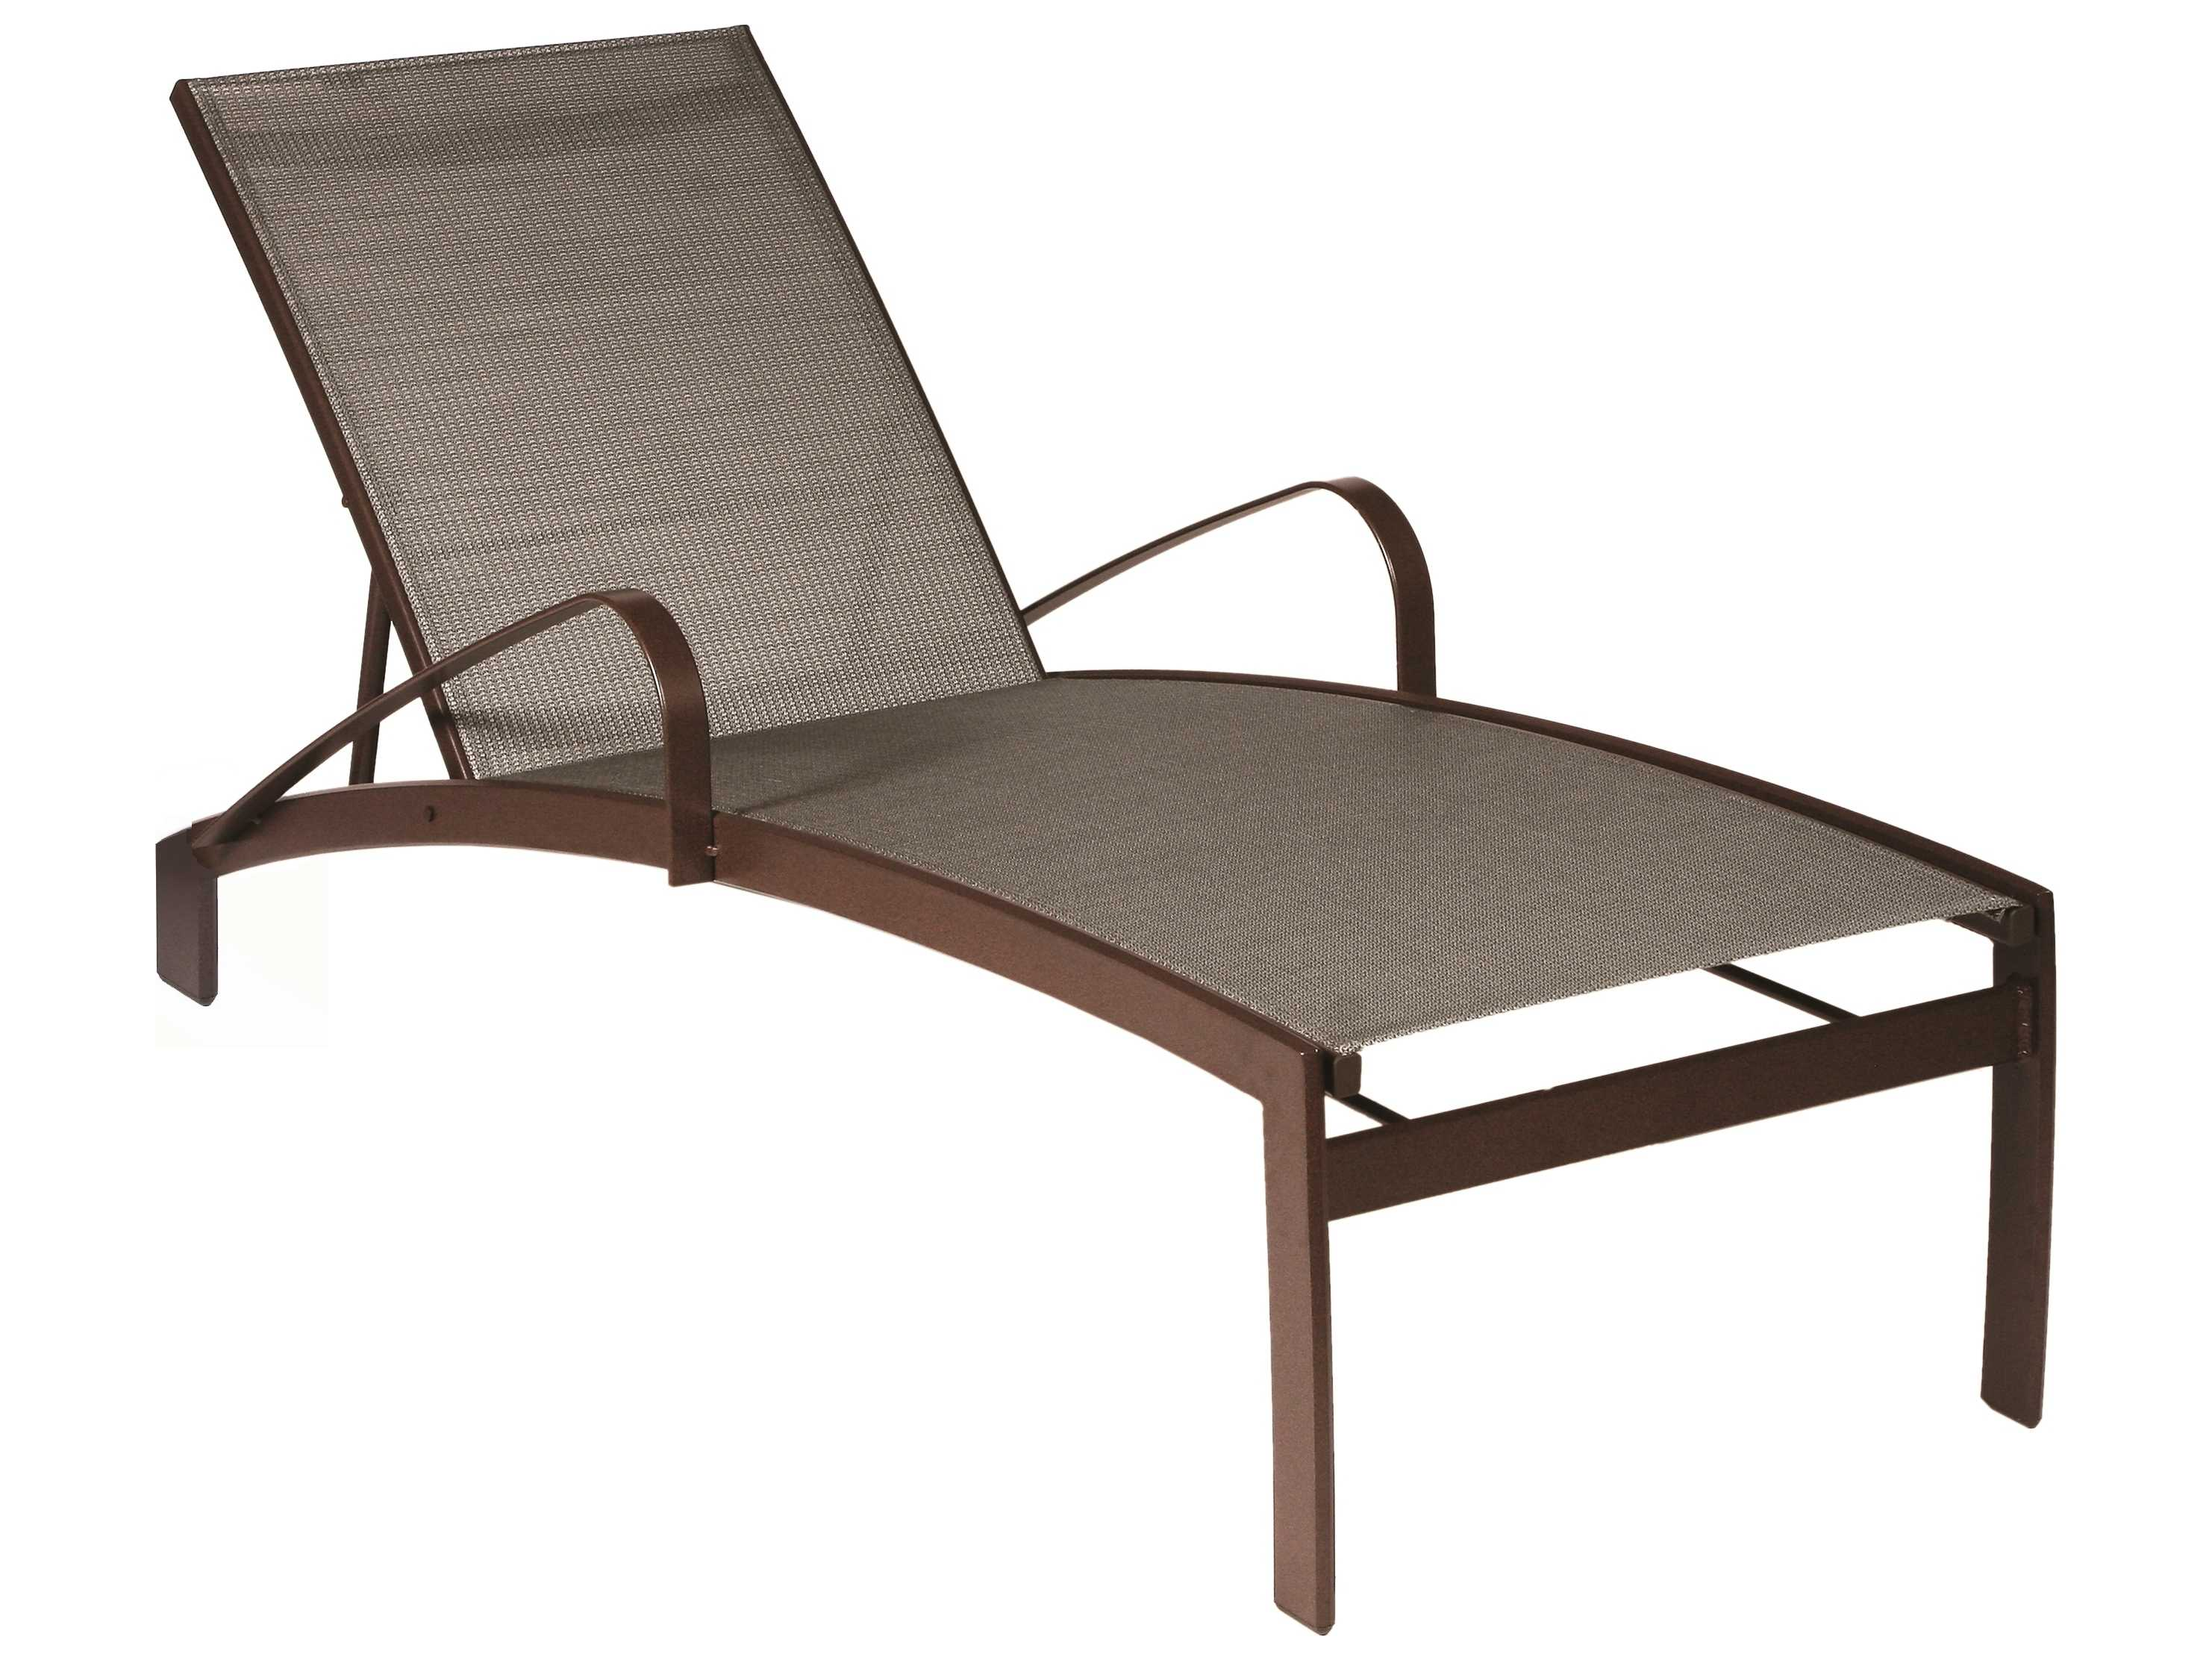 Suncoast vision sling cast aluminum chaise lounge 7989 for Aluminum chaise lounges